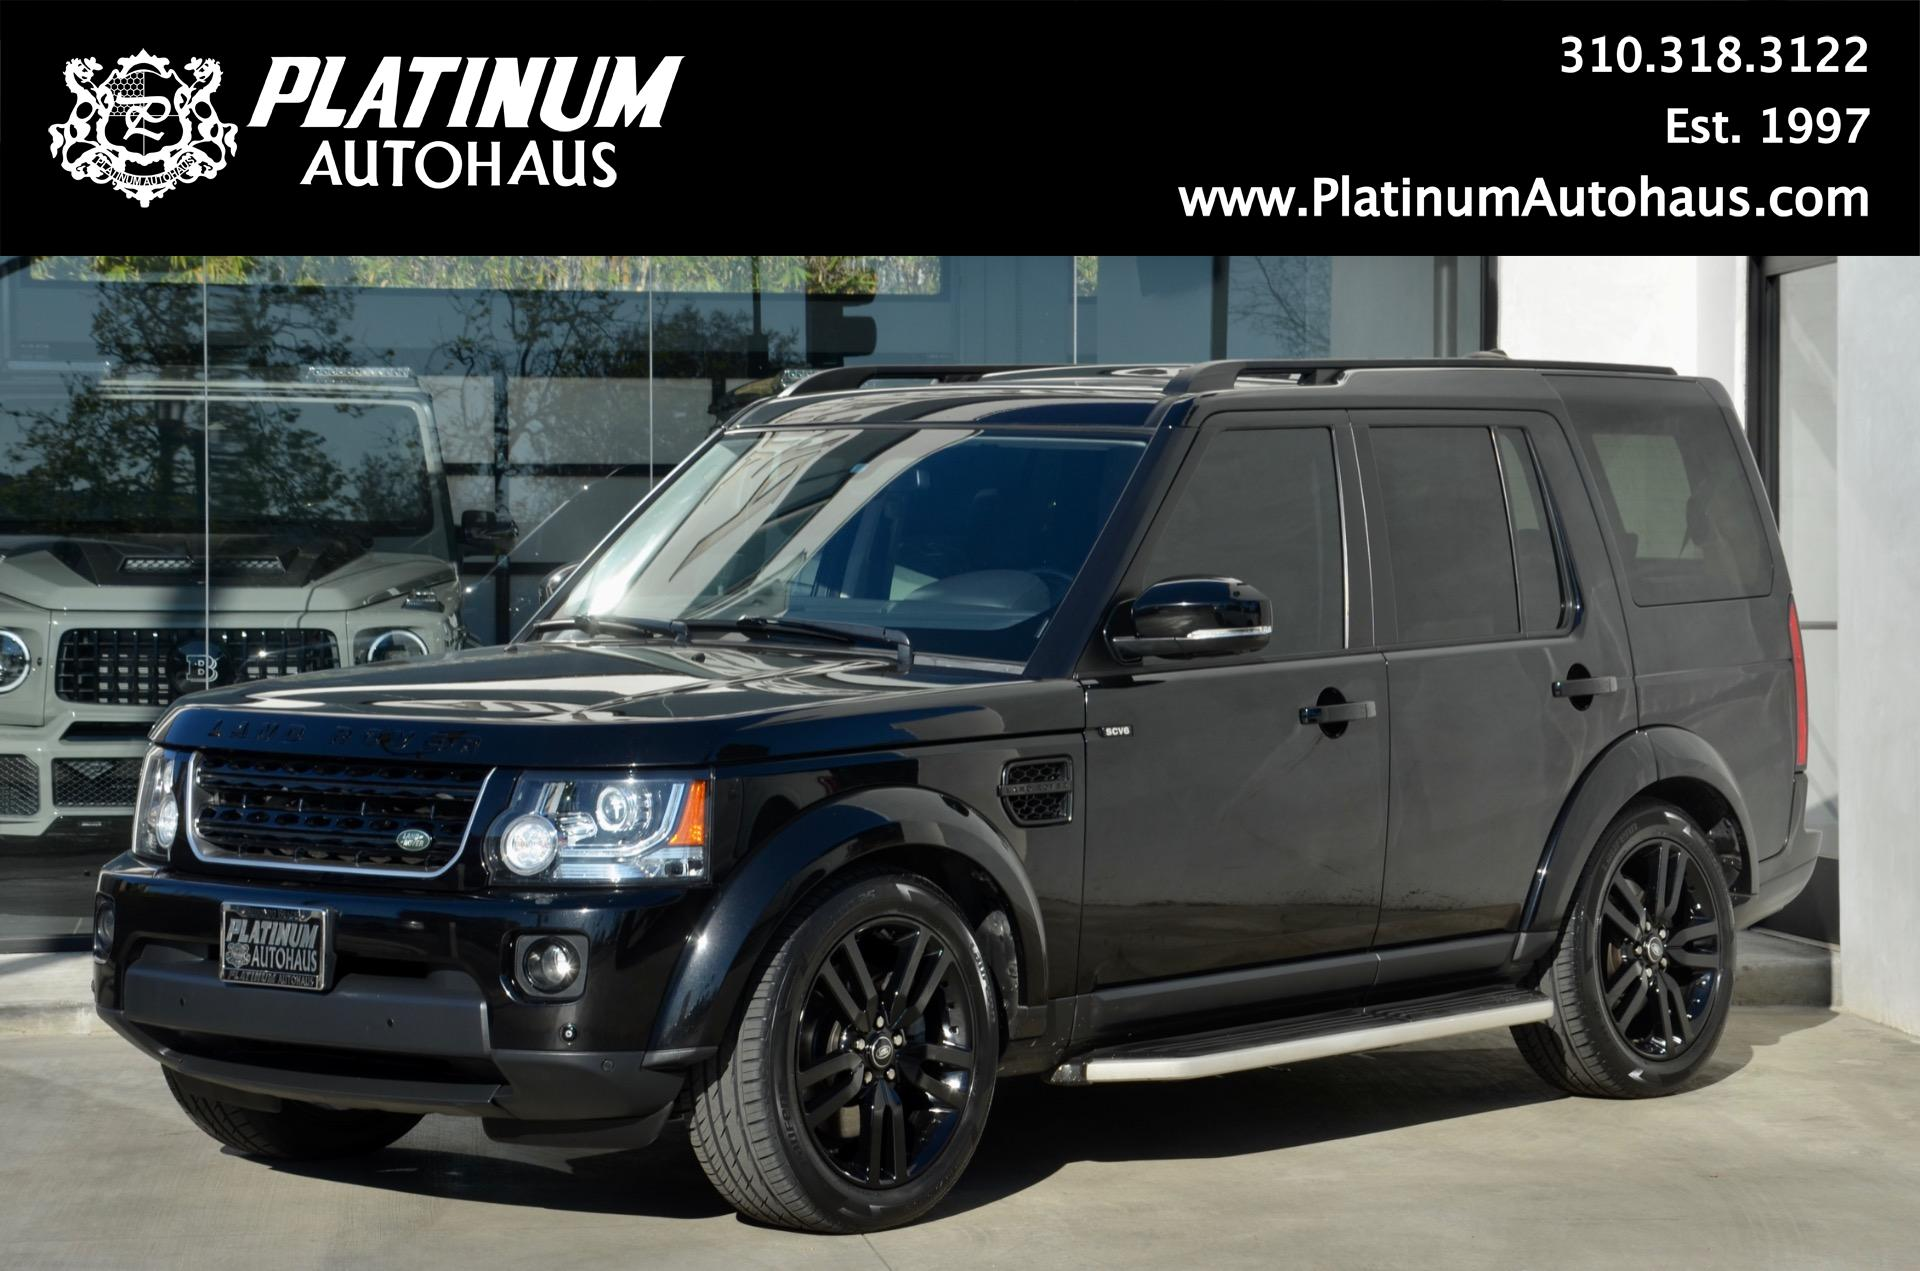 2015 land rover lr4 hse lux stock 6141 for sale near redondo beach ca ca land rover dealer. Black Bedroom Furniture Sets. Home Design Ideas